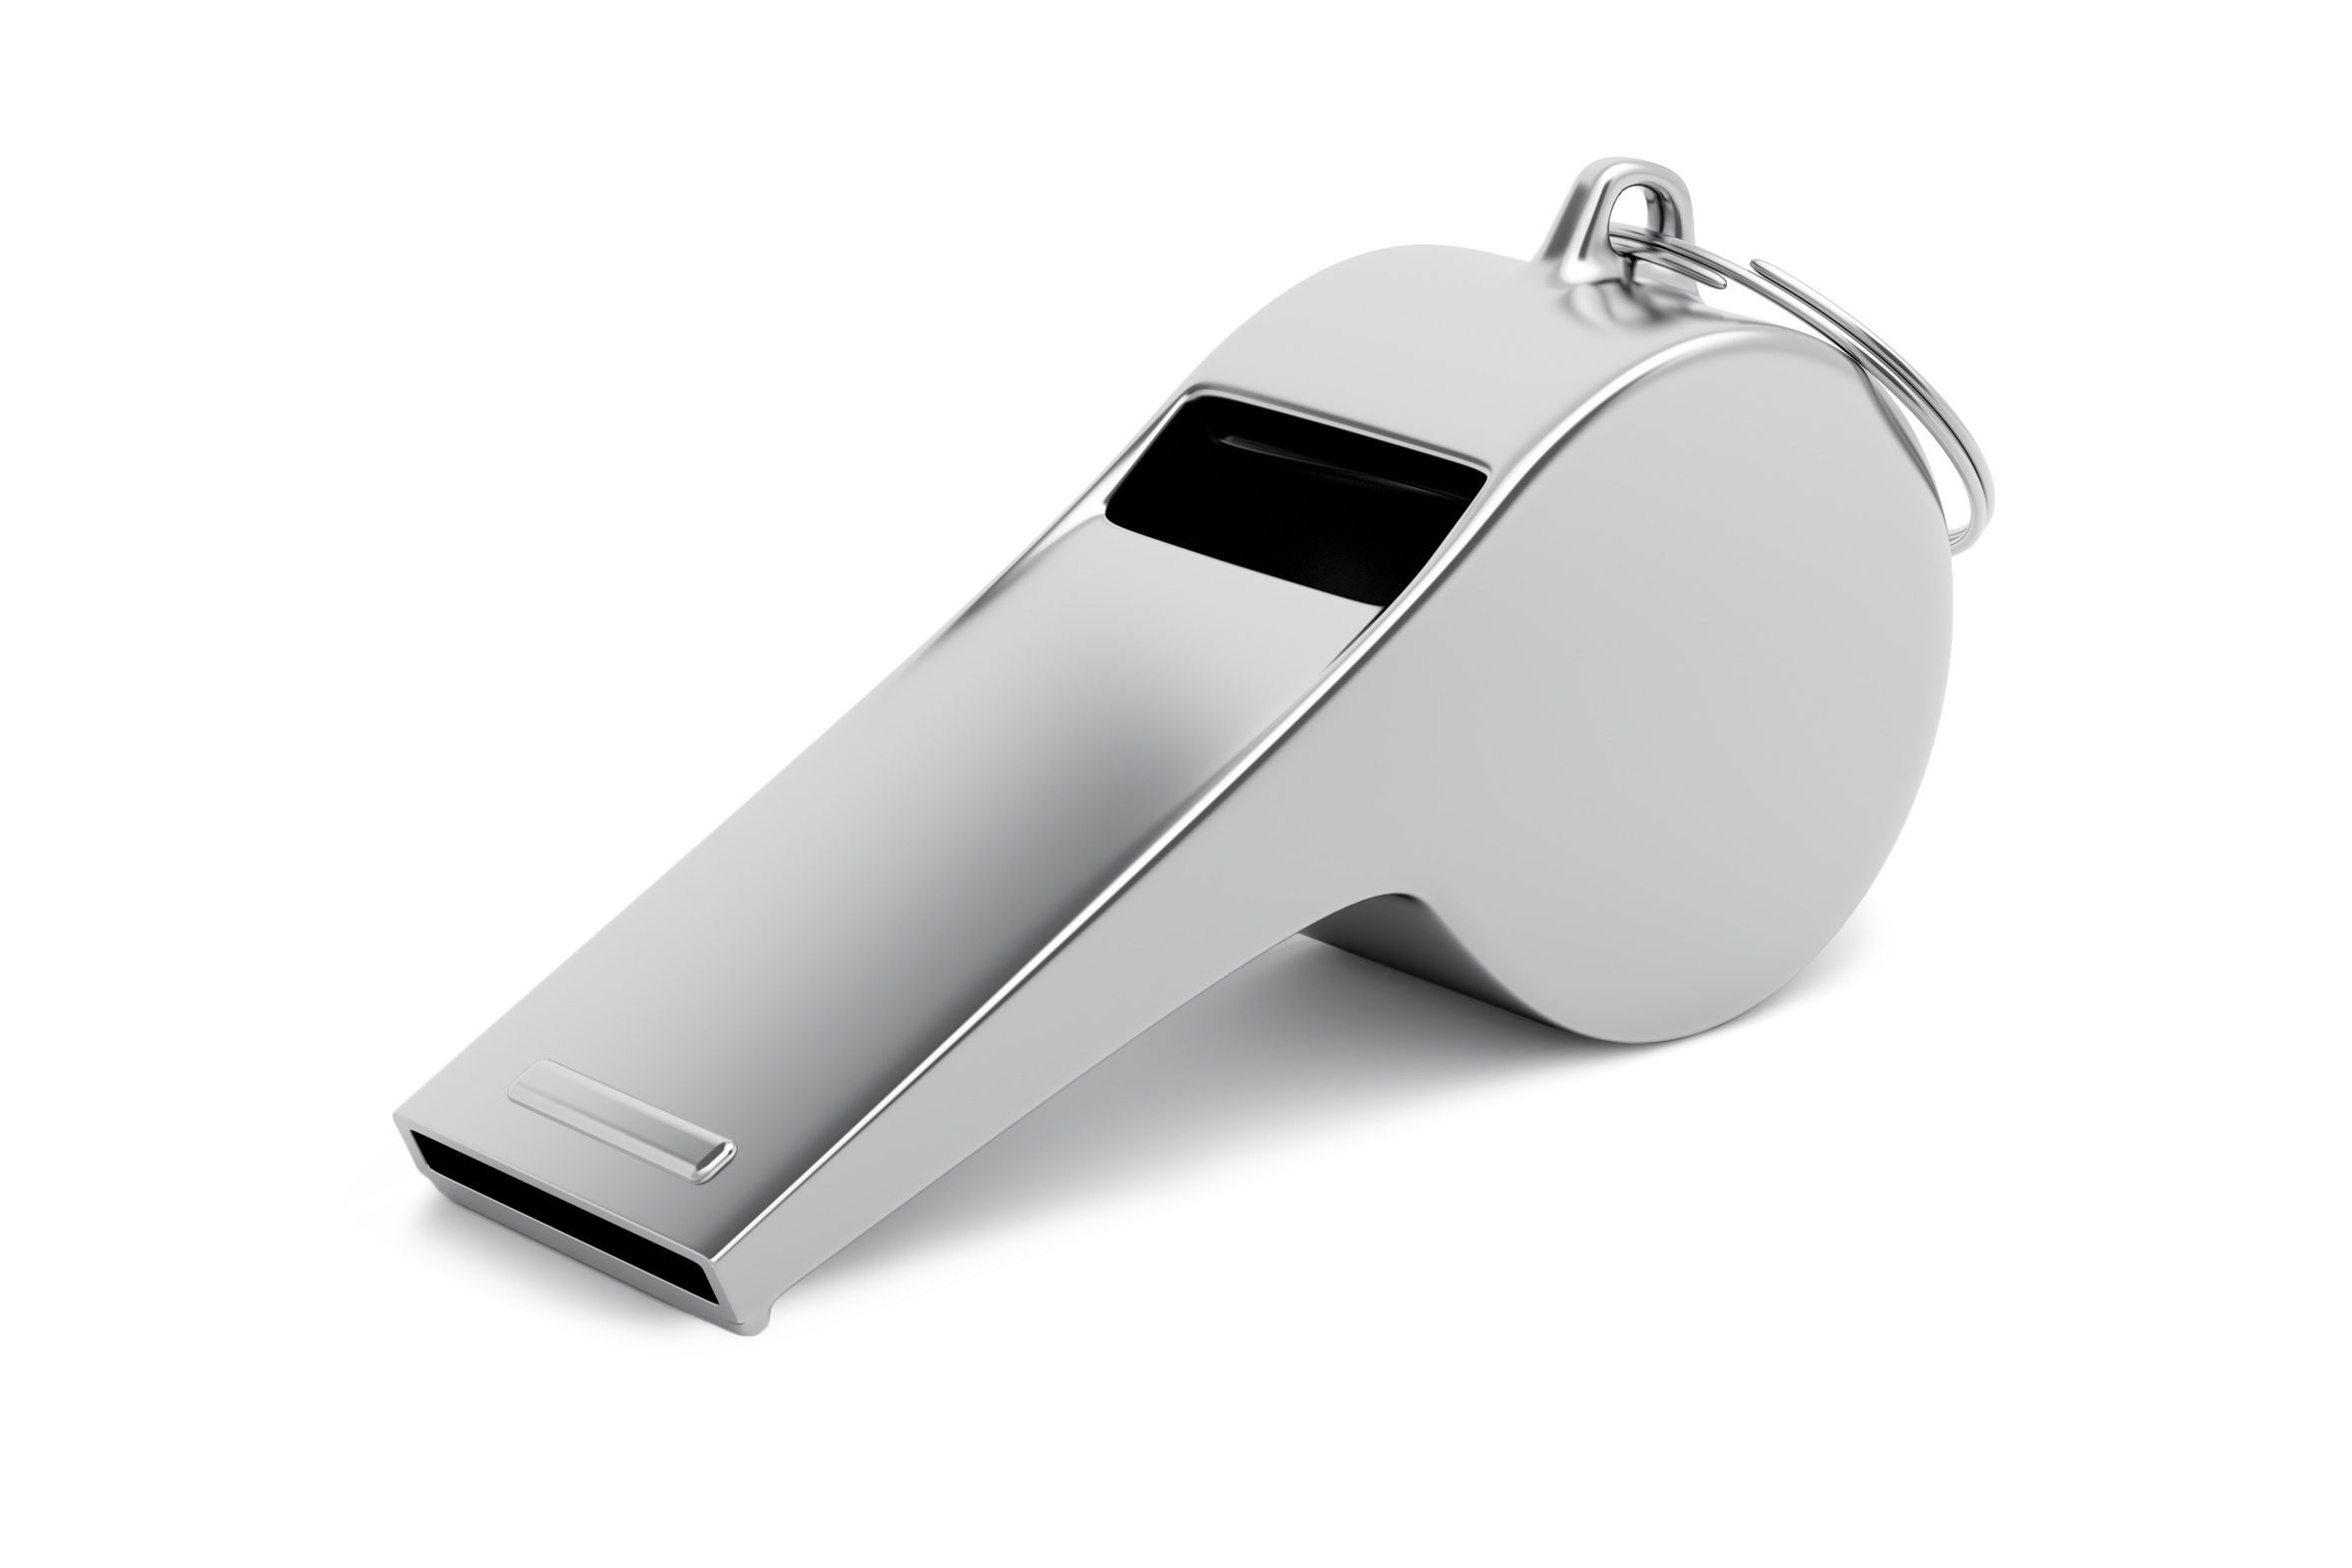 PNG Whistle - 53794